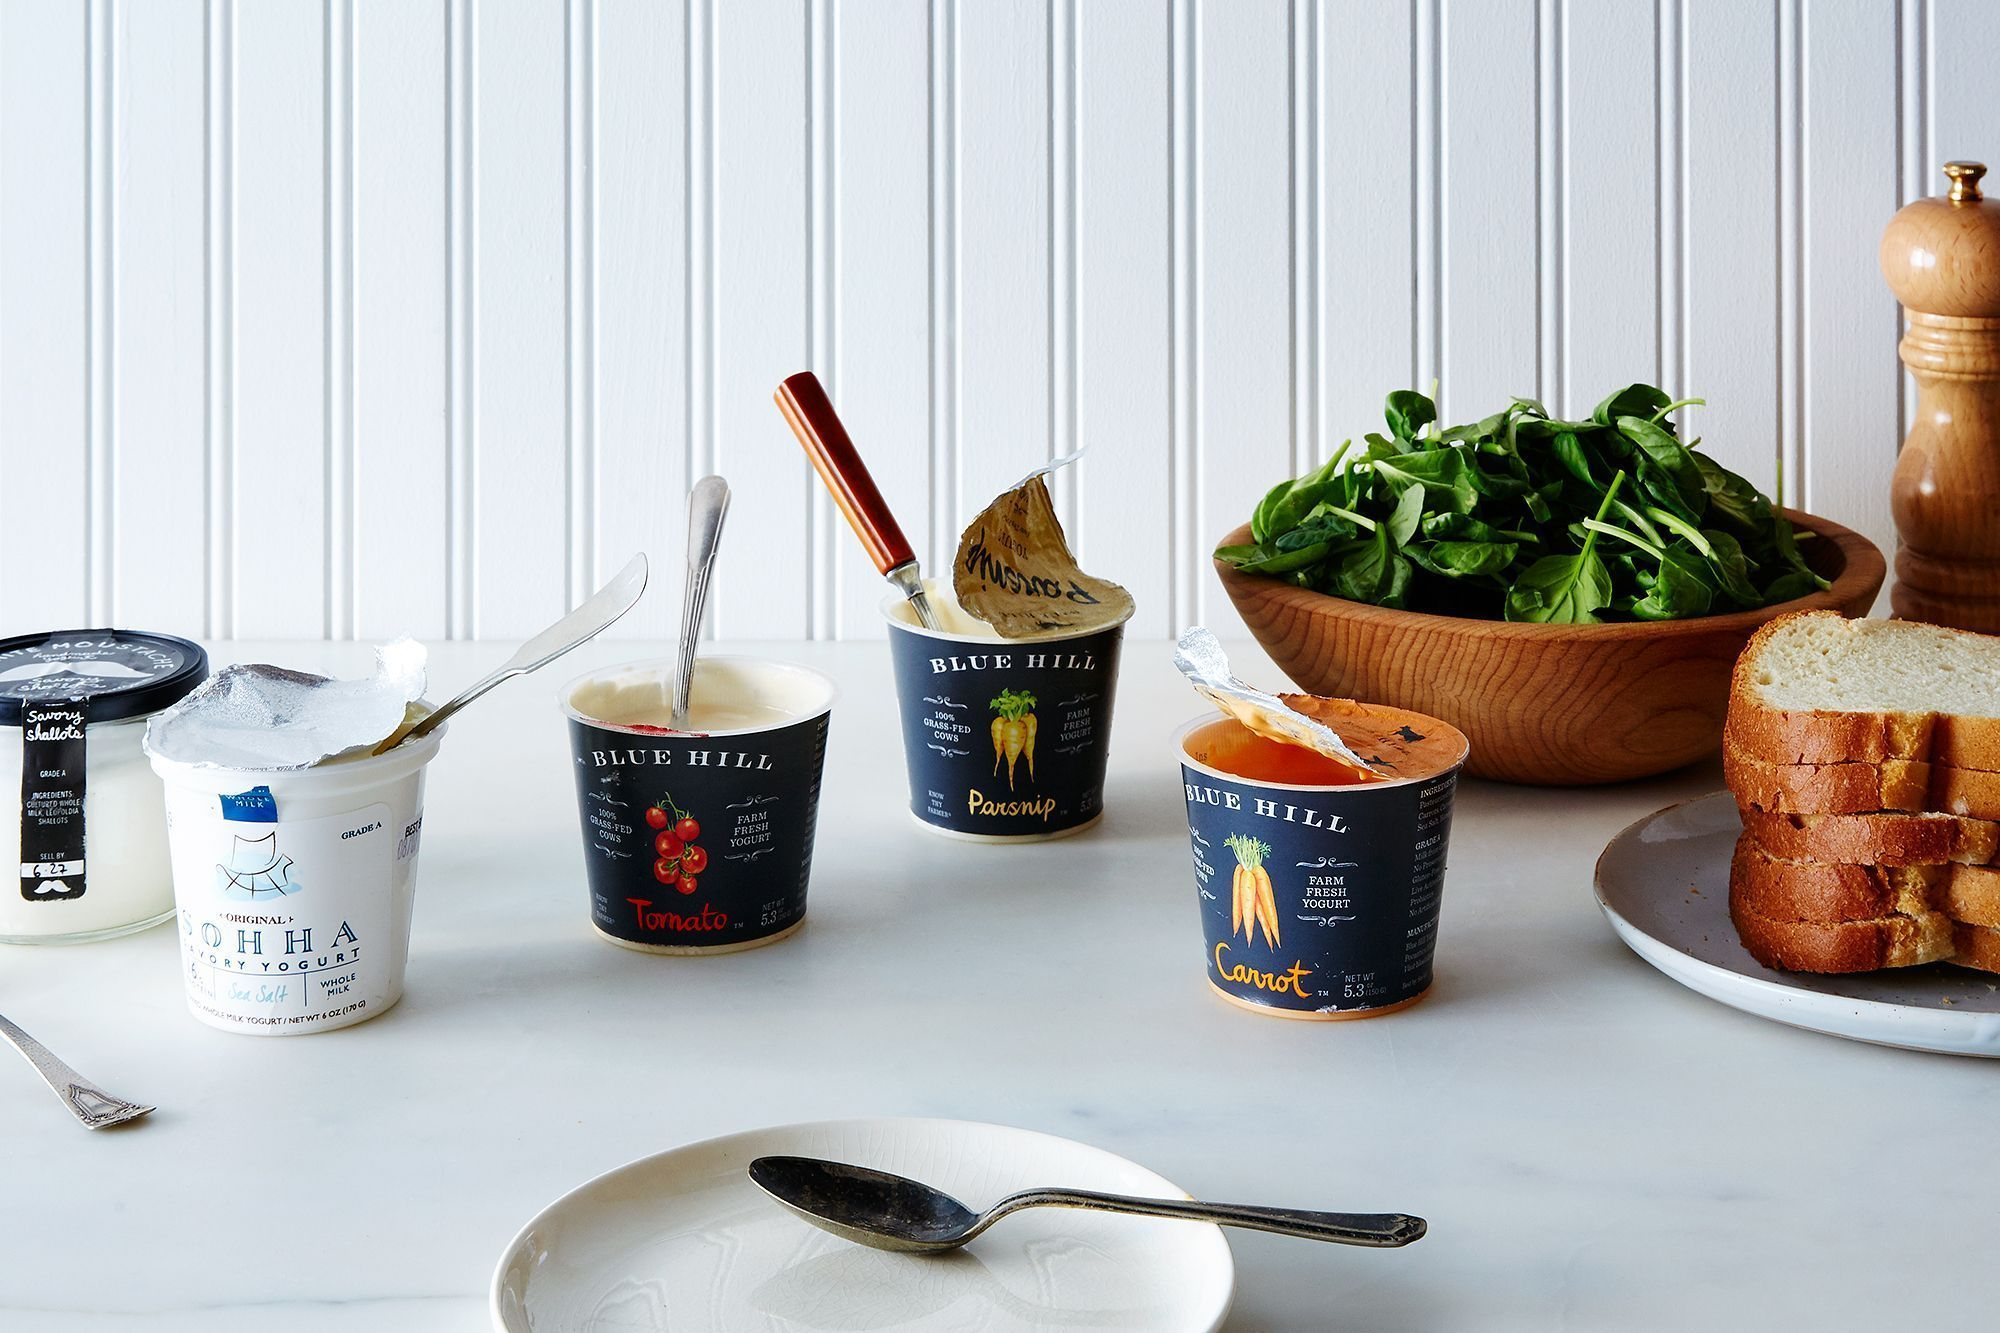 What Does Recyclable, Biodegradable & Compostable Mean Anyways? on Food52